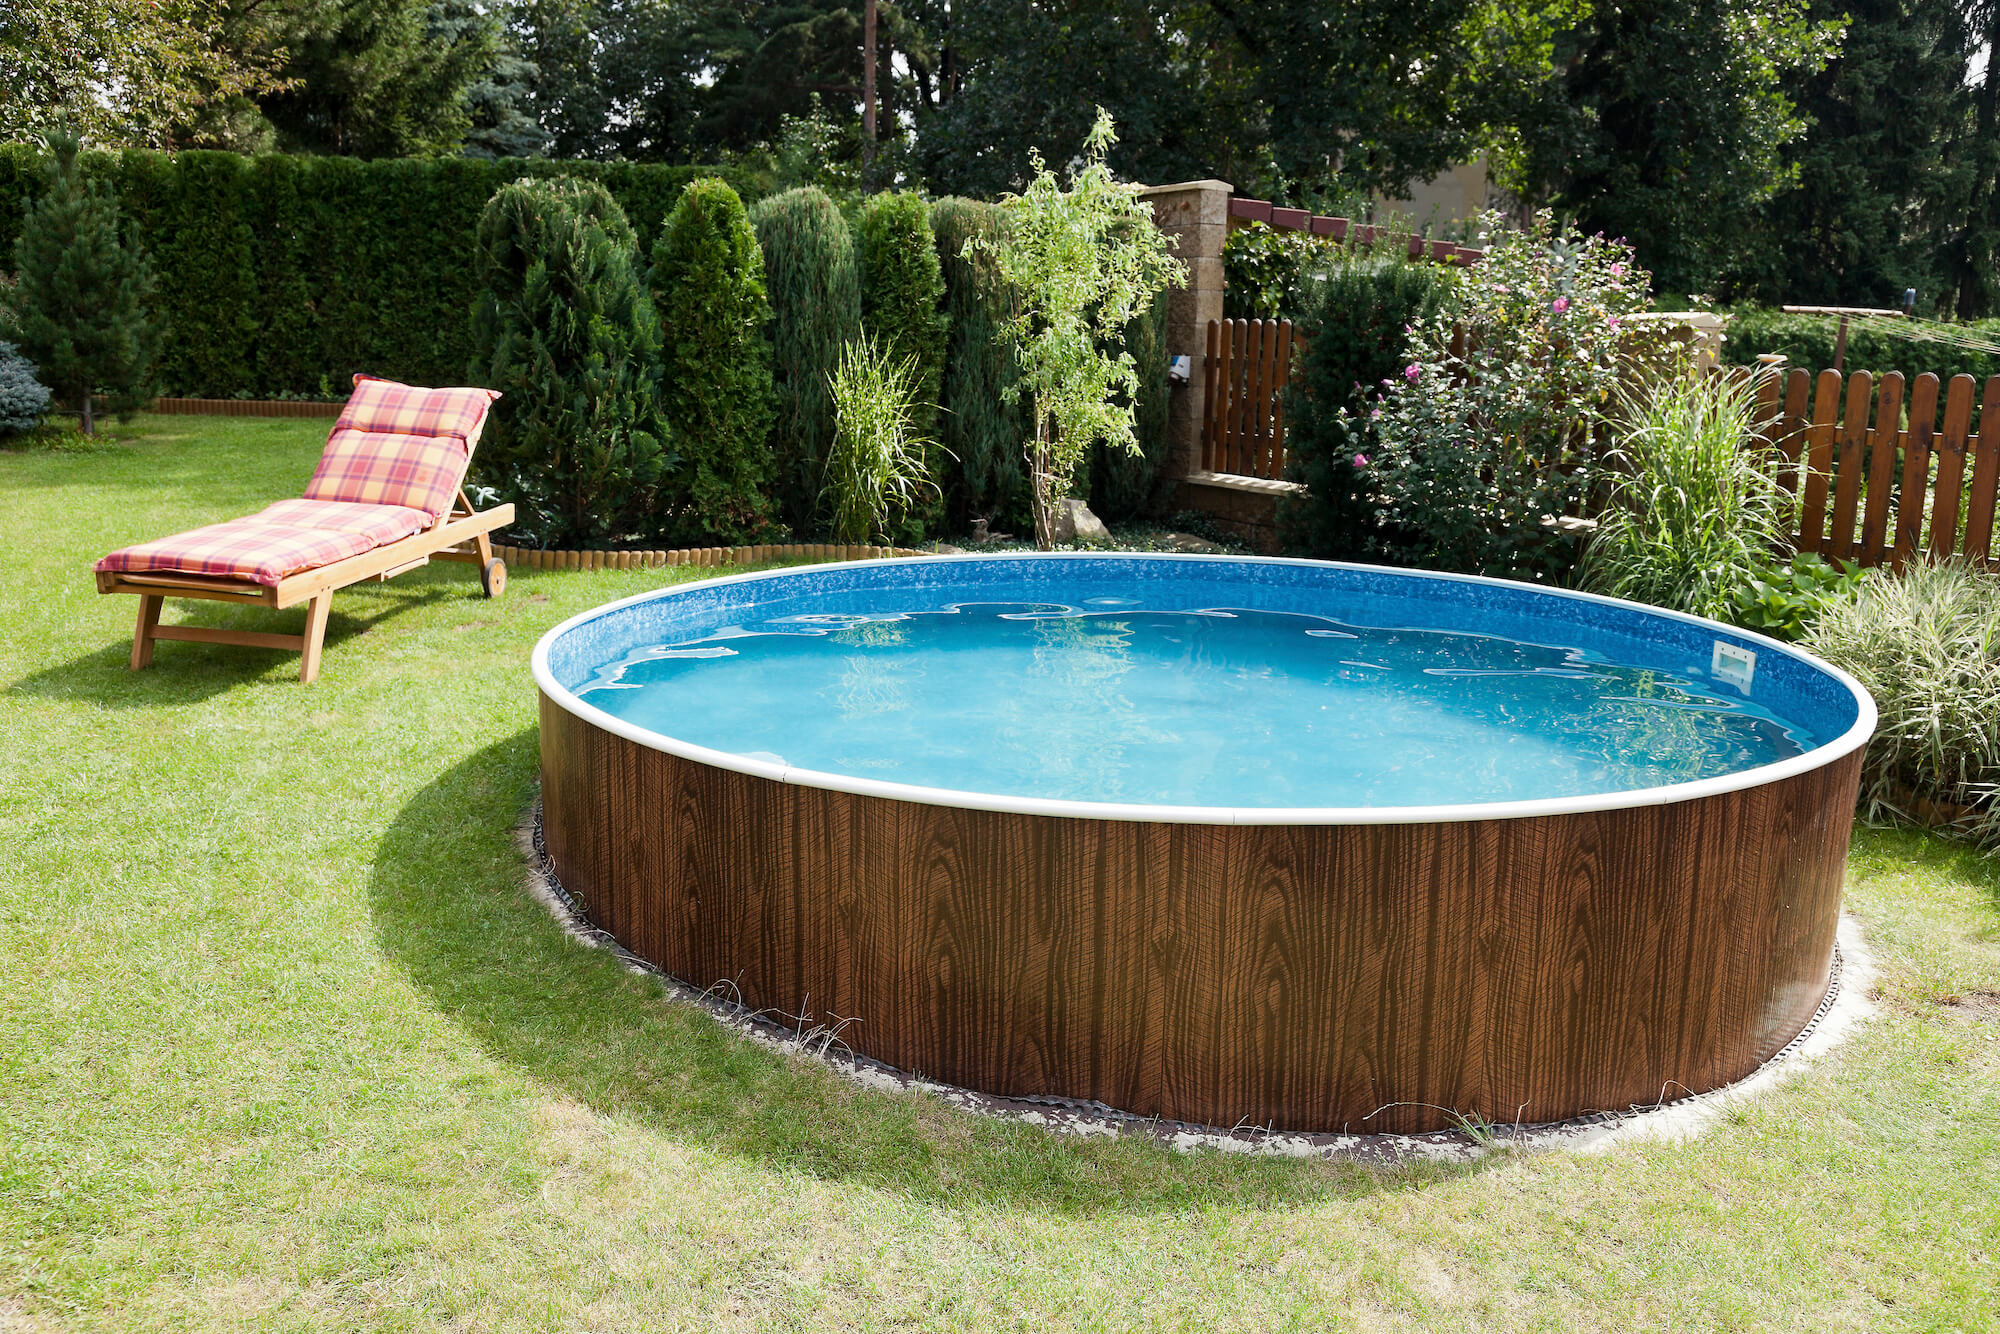 Above ground pools for sale online uk 1st direct for Buy swimming pool